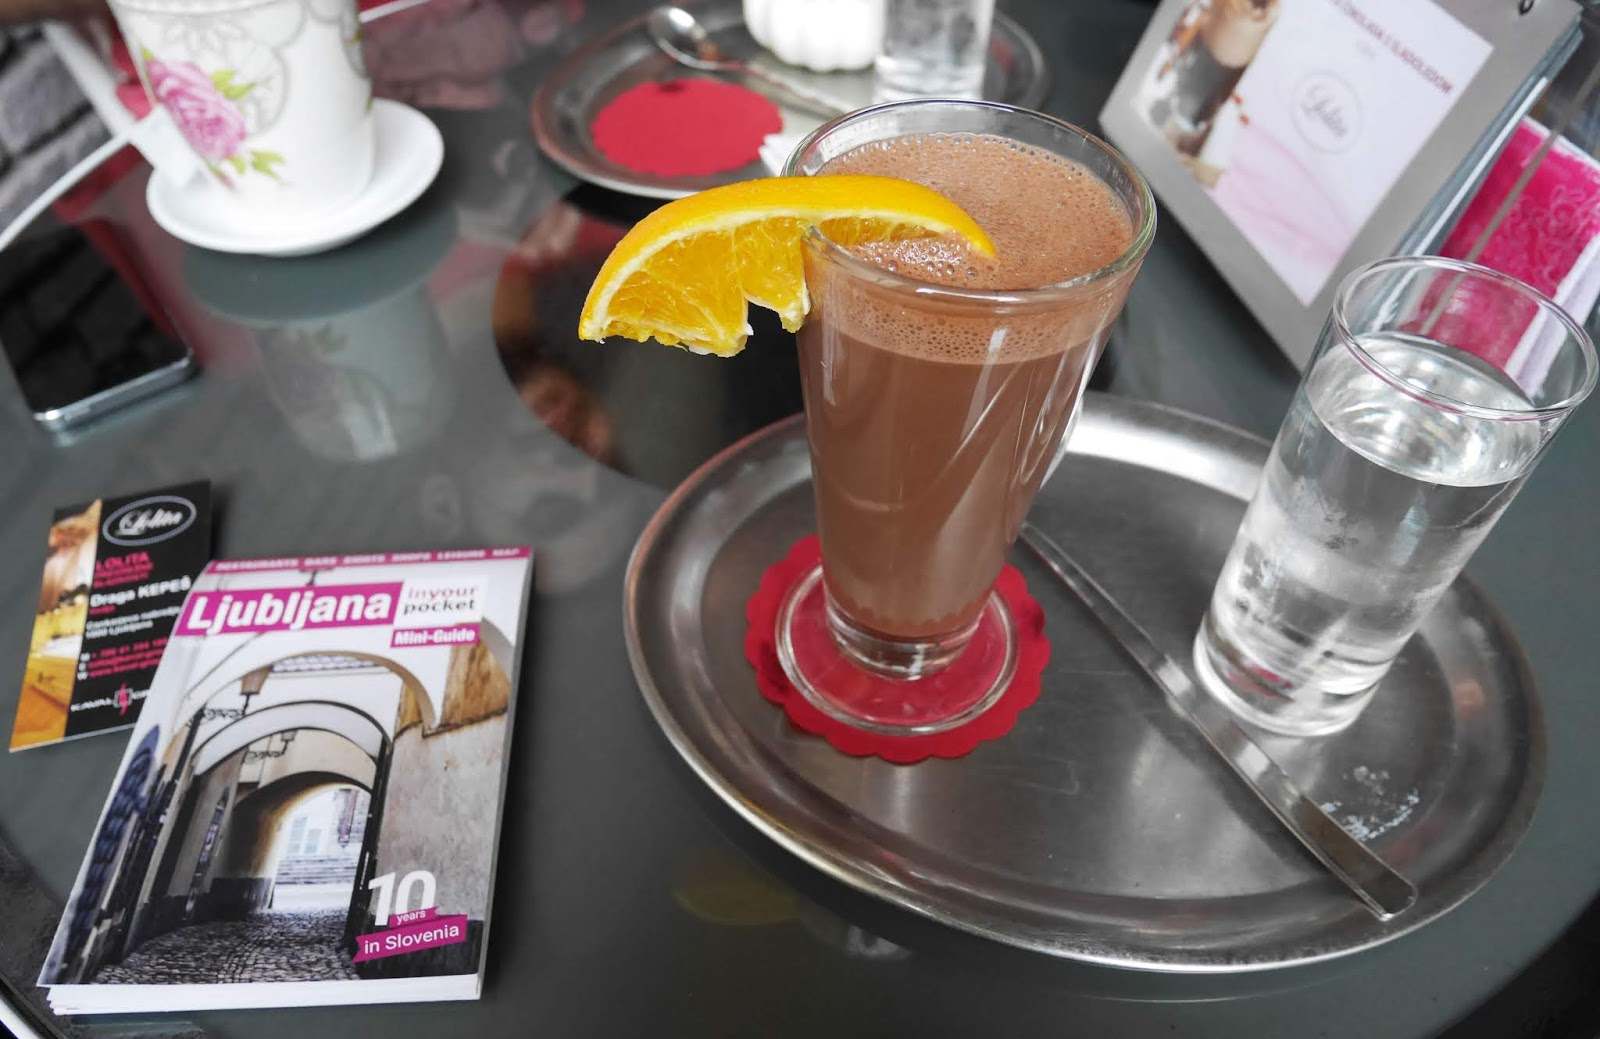 Hot Chocolate at Lolita tearoom in Ljubljana, Slovenia